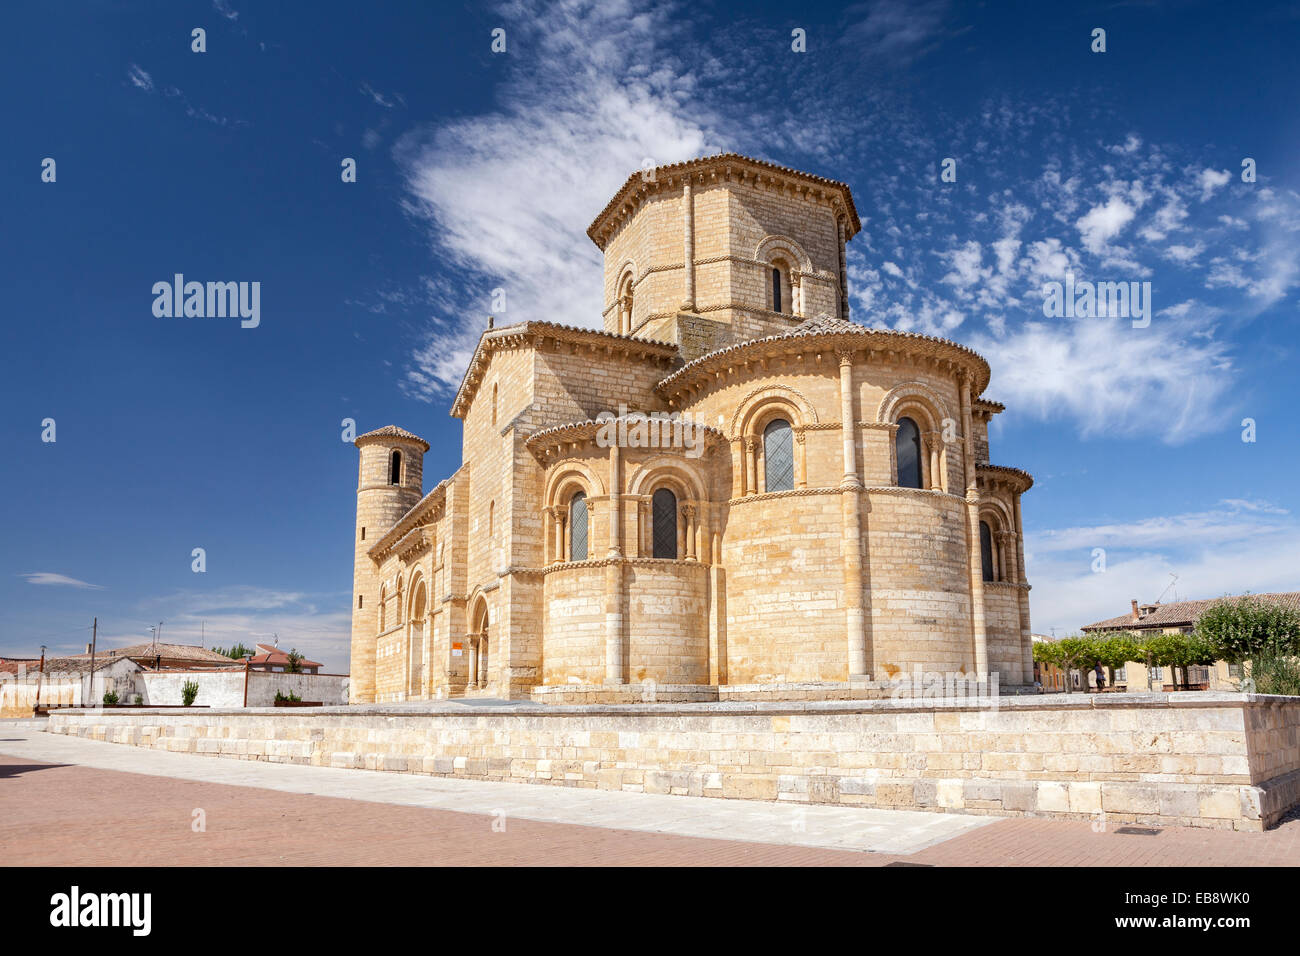 Churc of San Martin in Fromista, Way of St. James, Palencia, Spain - Stock Image